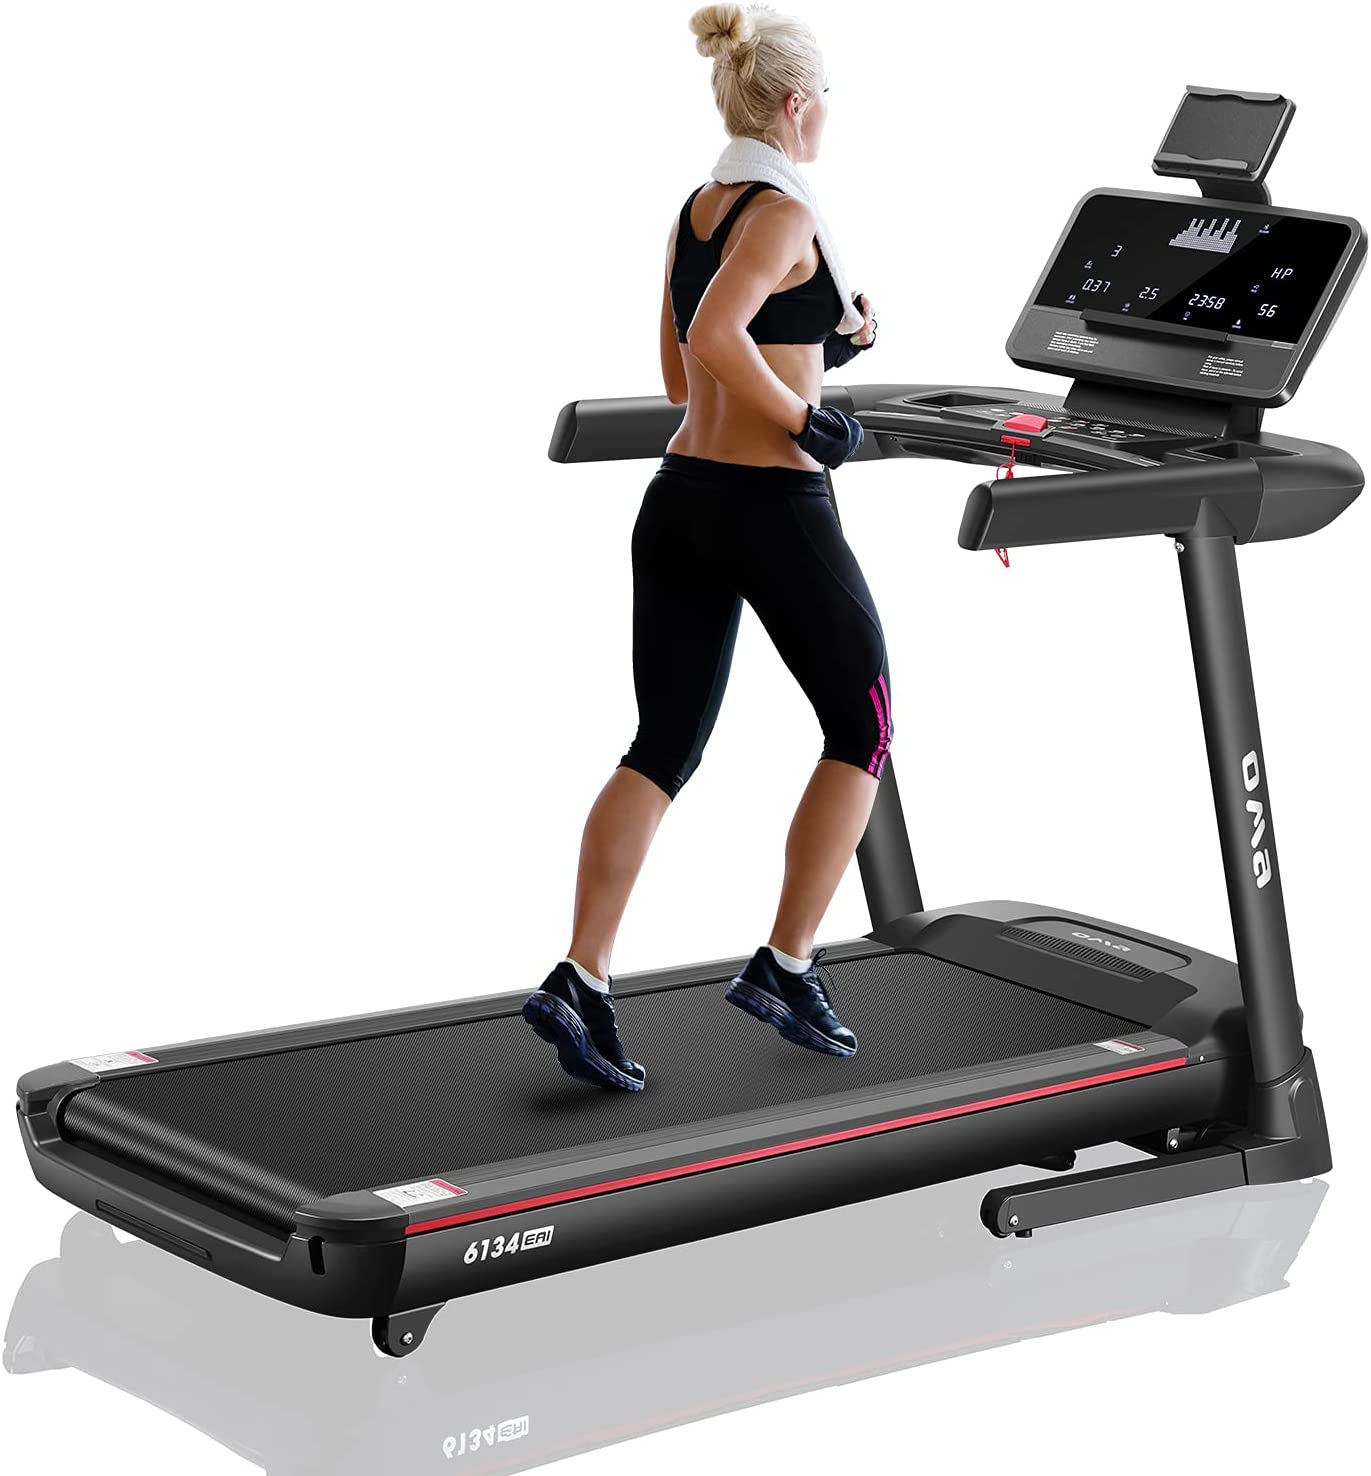 OMA Treadmill for Home 6134EAI with 15% Auto Incline 350 LBS Capacity Folding Exercise Treadmill for Running